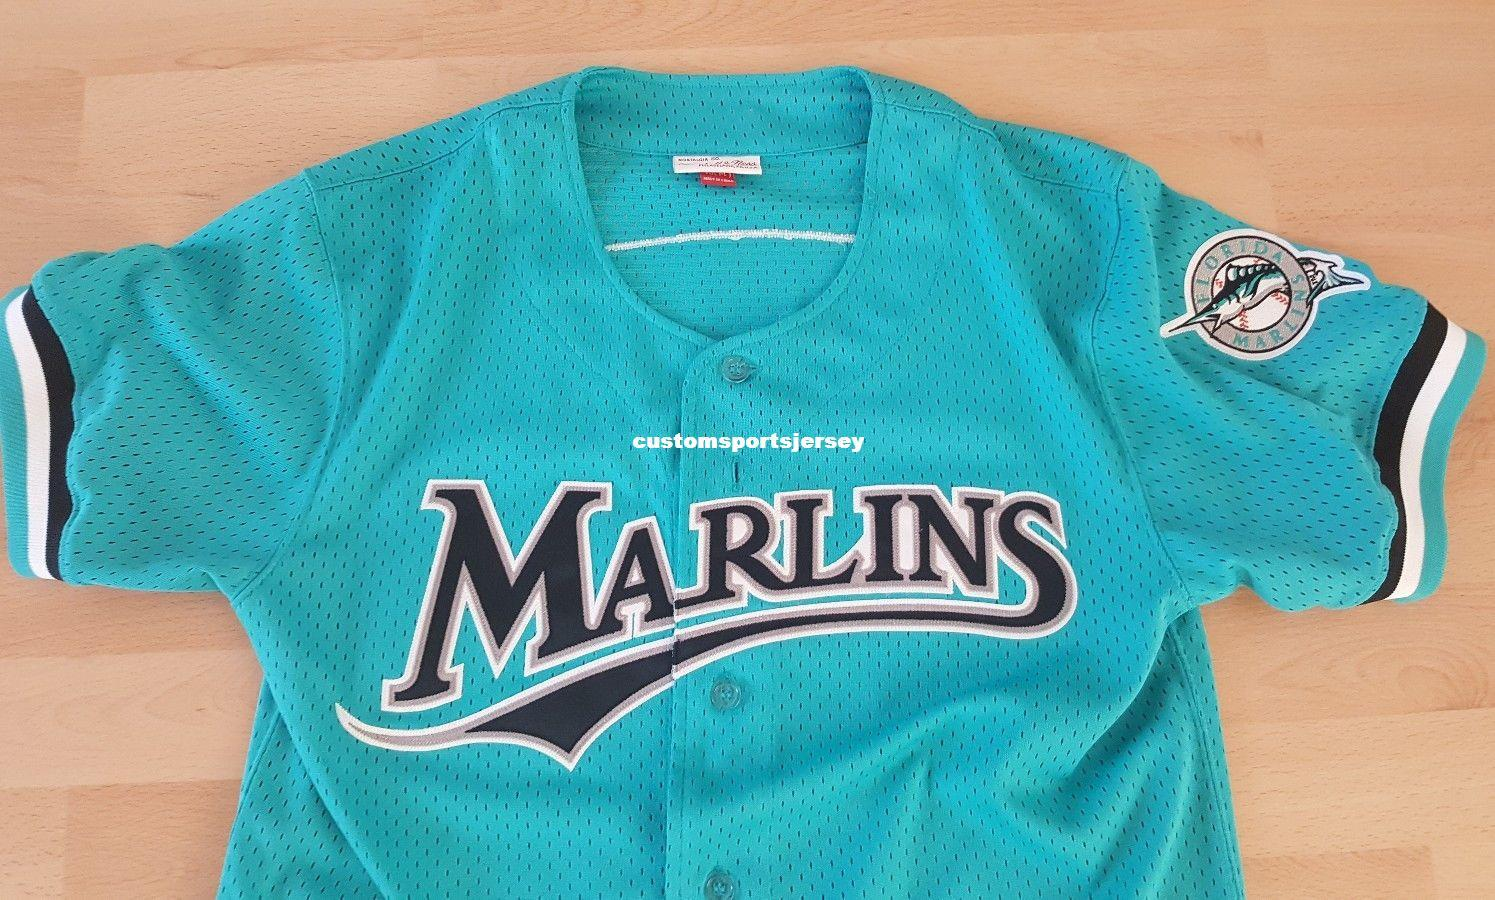 de2130bb ... discount cheap jersey florida marlins baseball stitched customize any  name number men women youth baseball jerseys